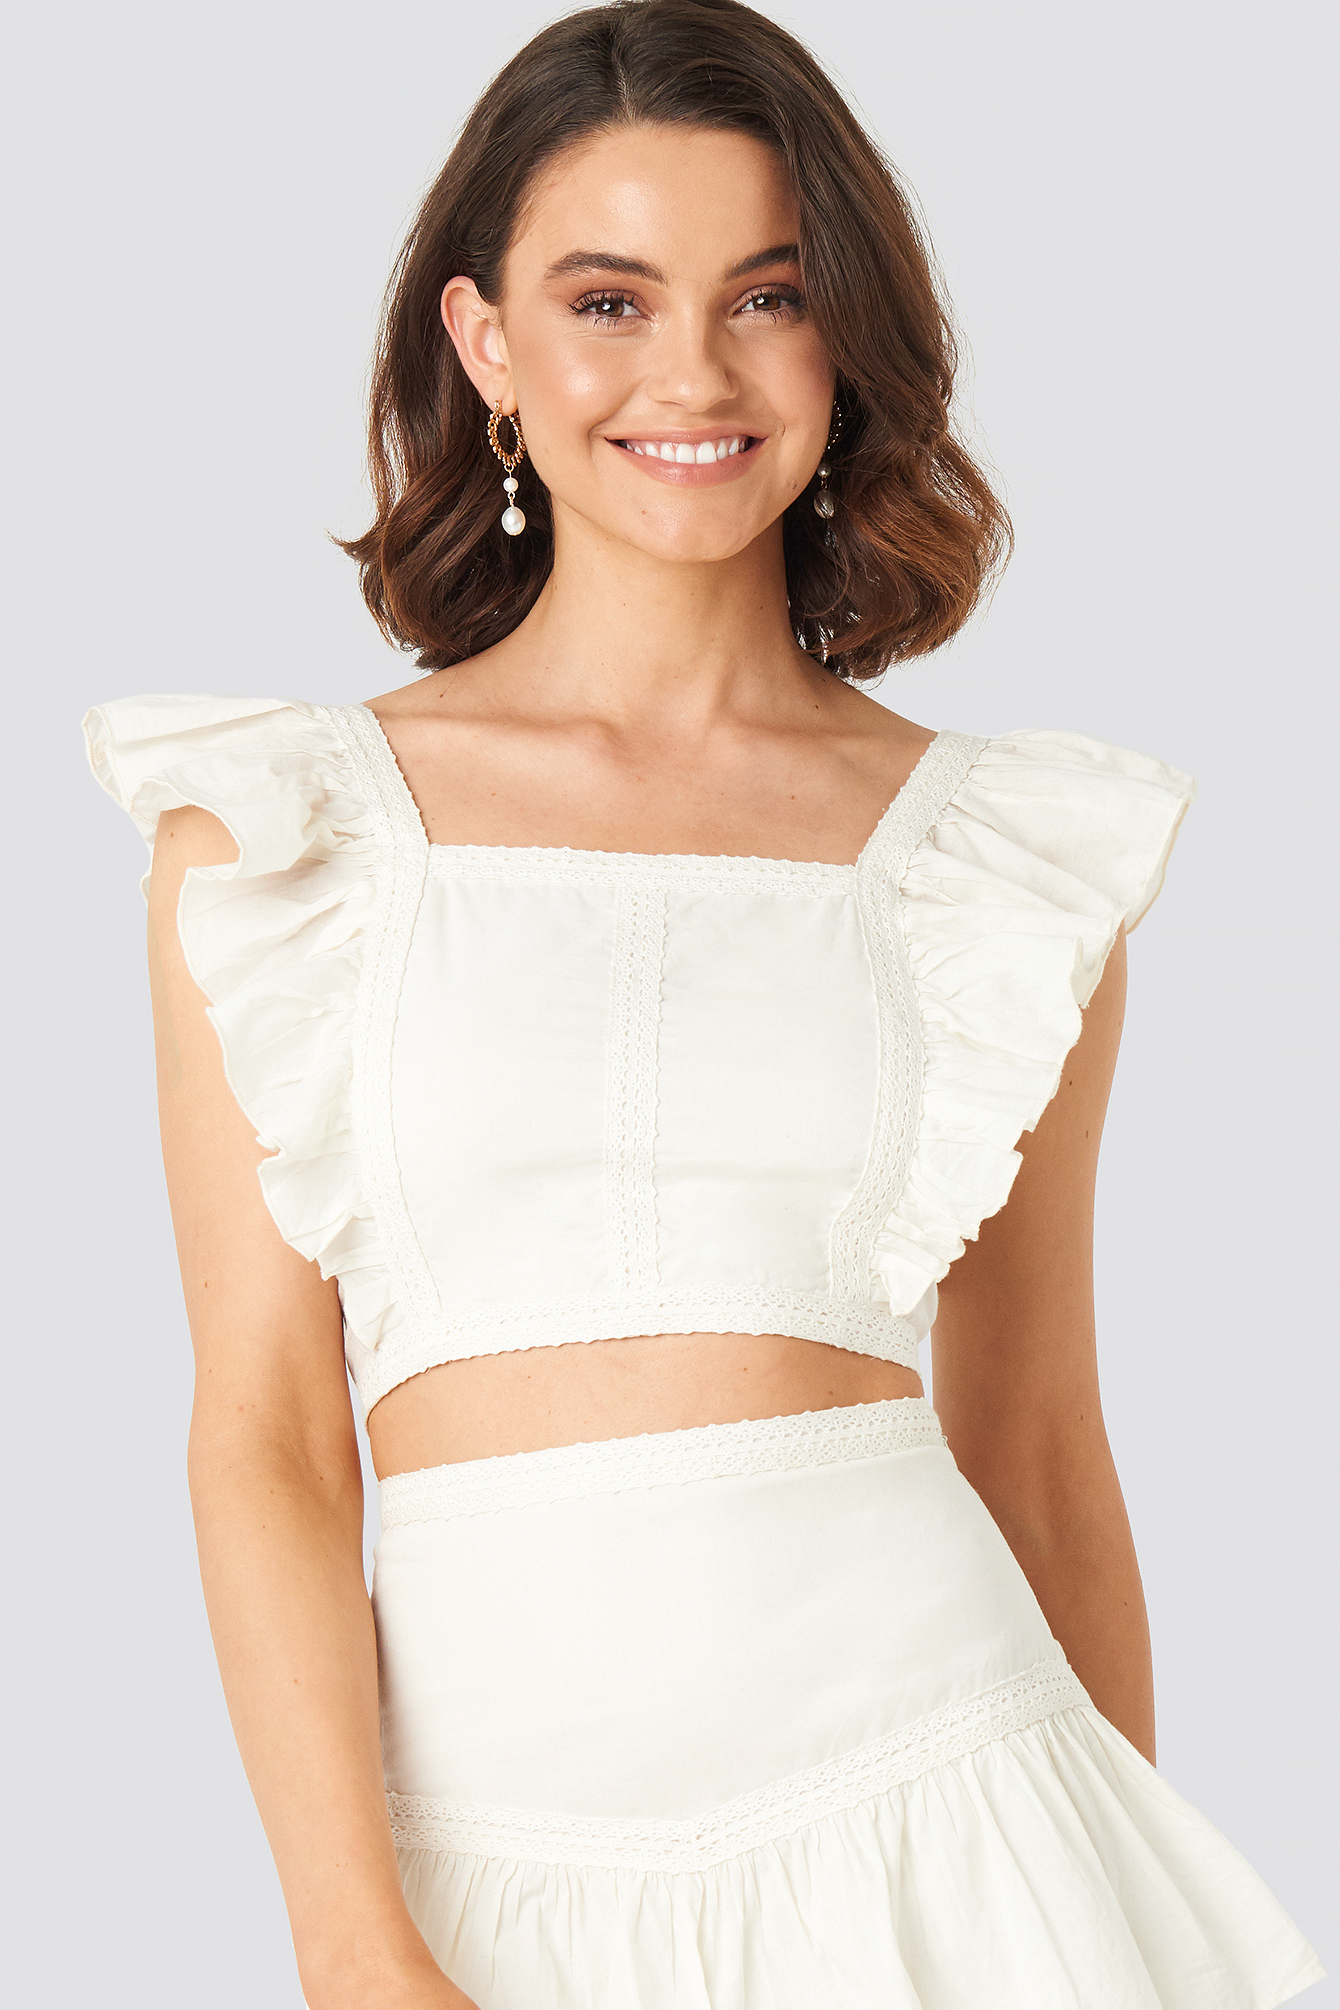 Queen Of Jetlags X Na-kd Lace Detailed Frill Cropped Top - White In Off White